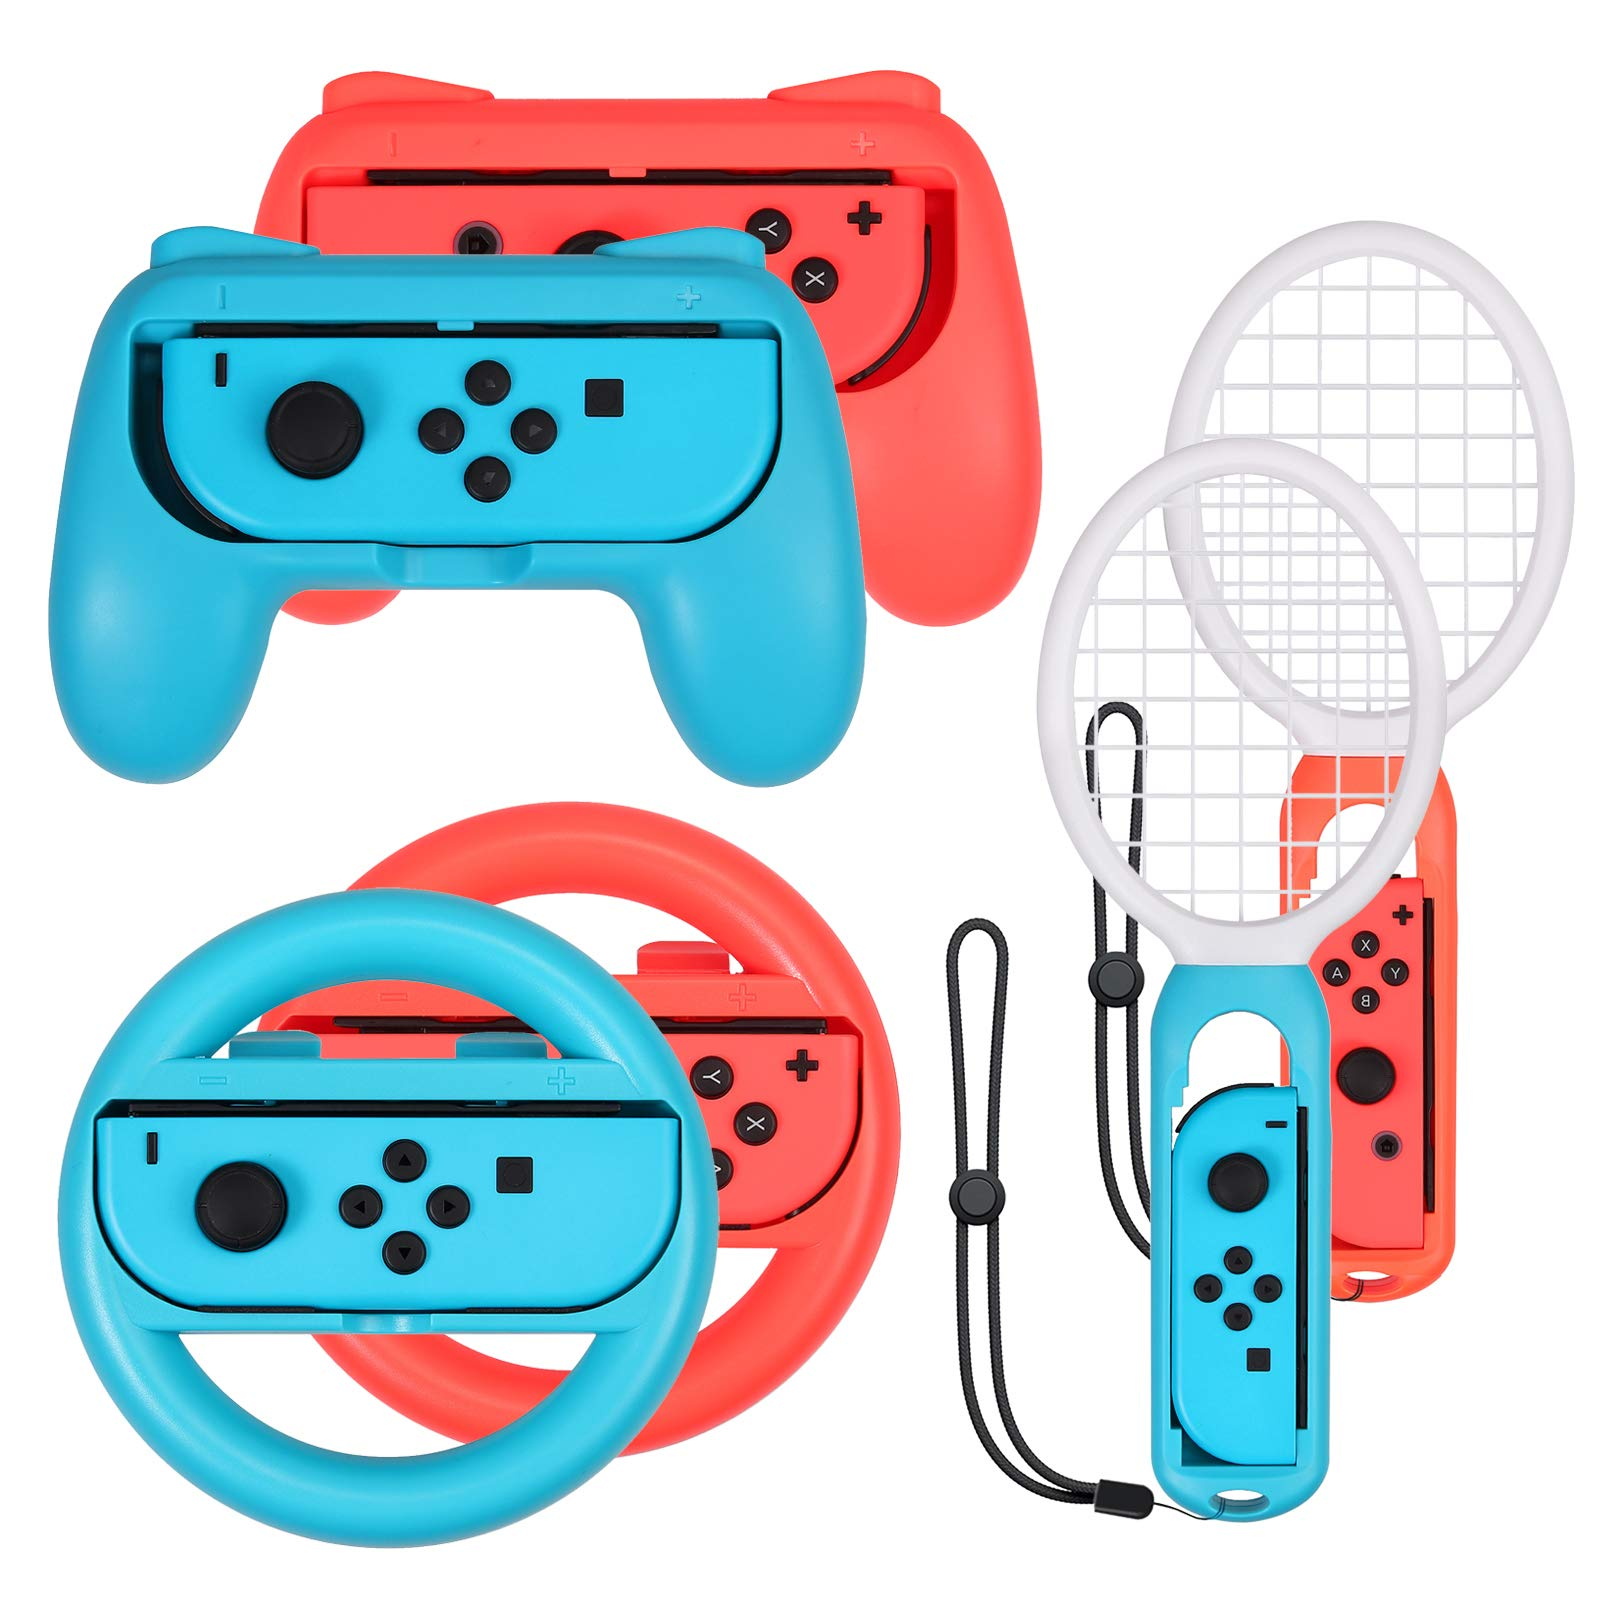 AUTOUTLET Grip for Nintendo Switch Joy-Con, Tennis Racket,Steering Wheel,Accessories for Mario Tennis Aces Game,3-Pack Switch Controller Grip Handle Kit for Nintendo Switch Joy-Con by AUTOUTLET